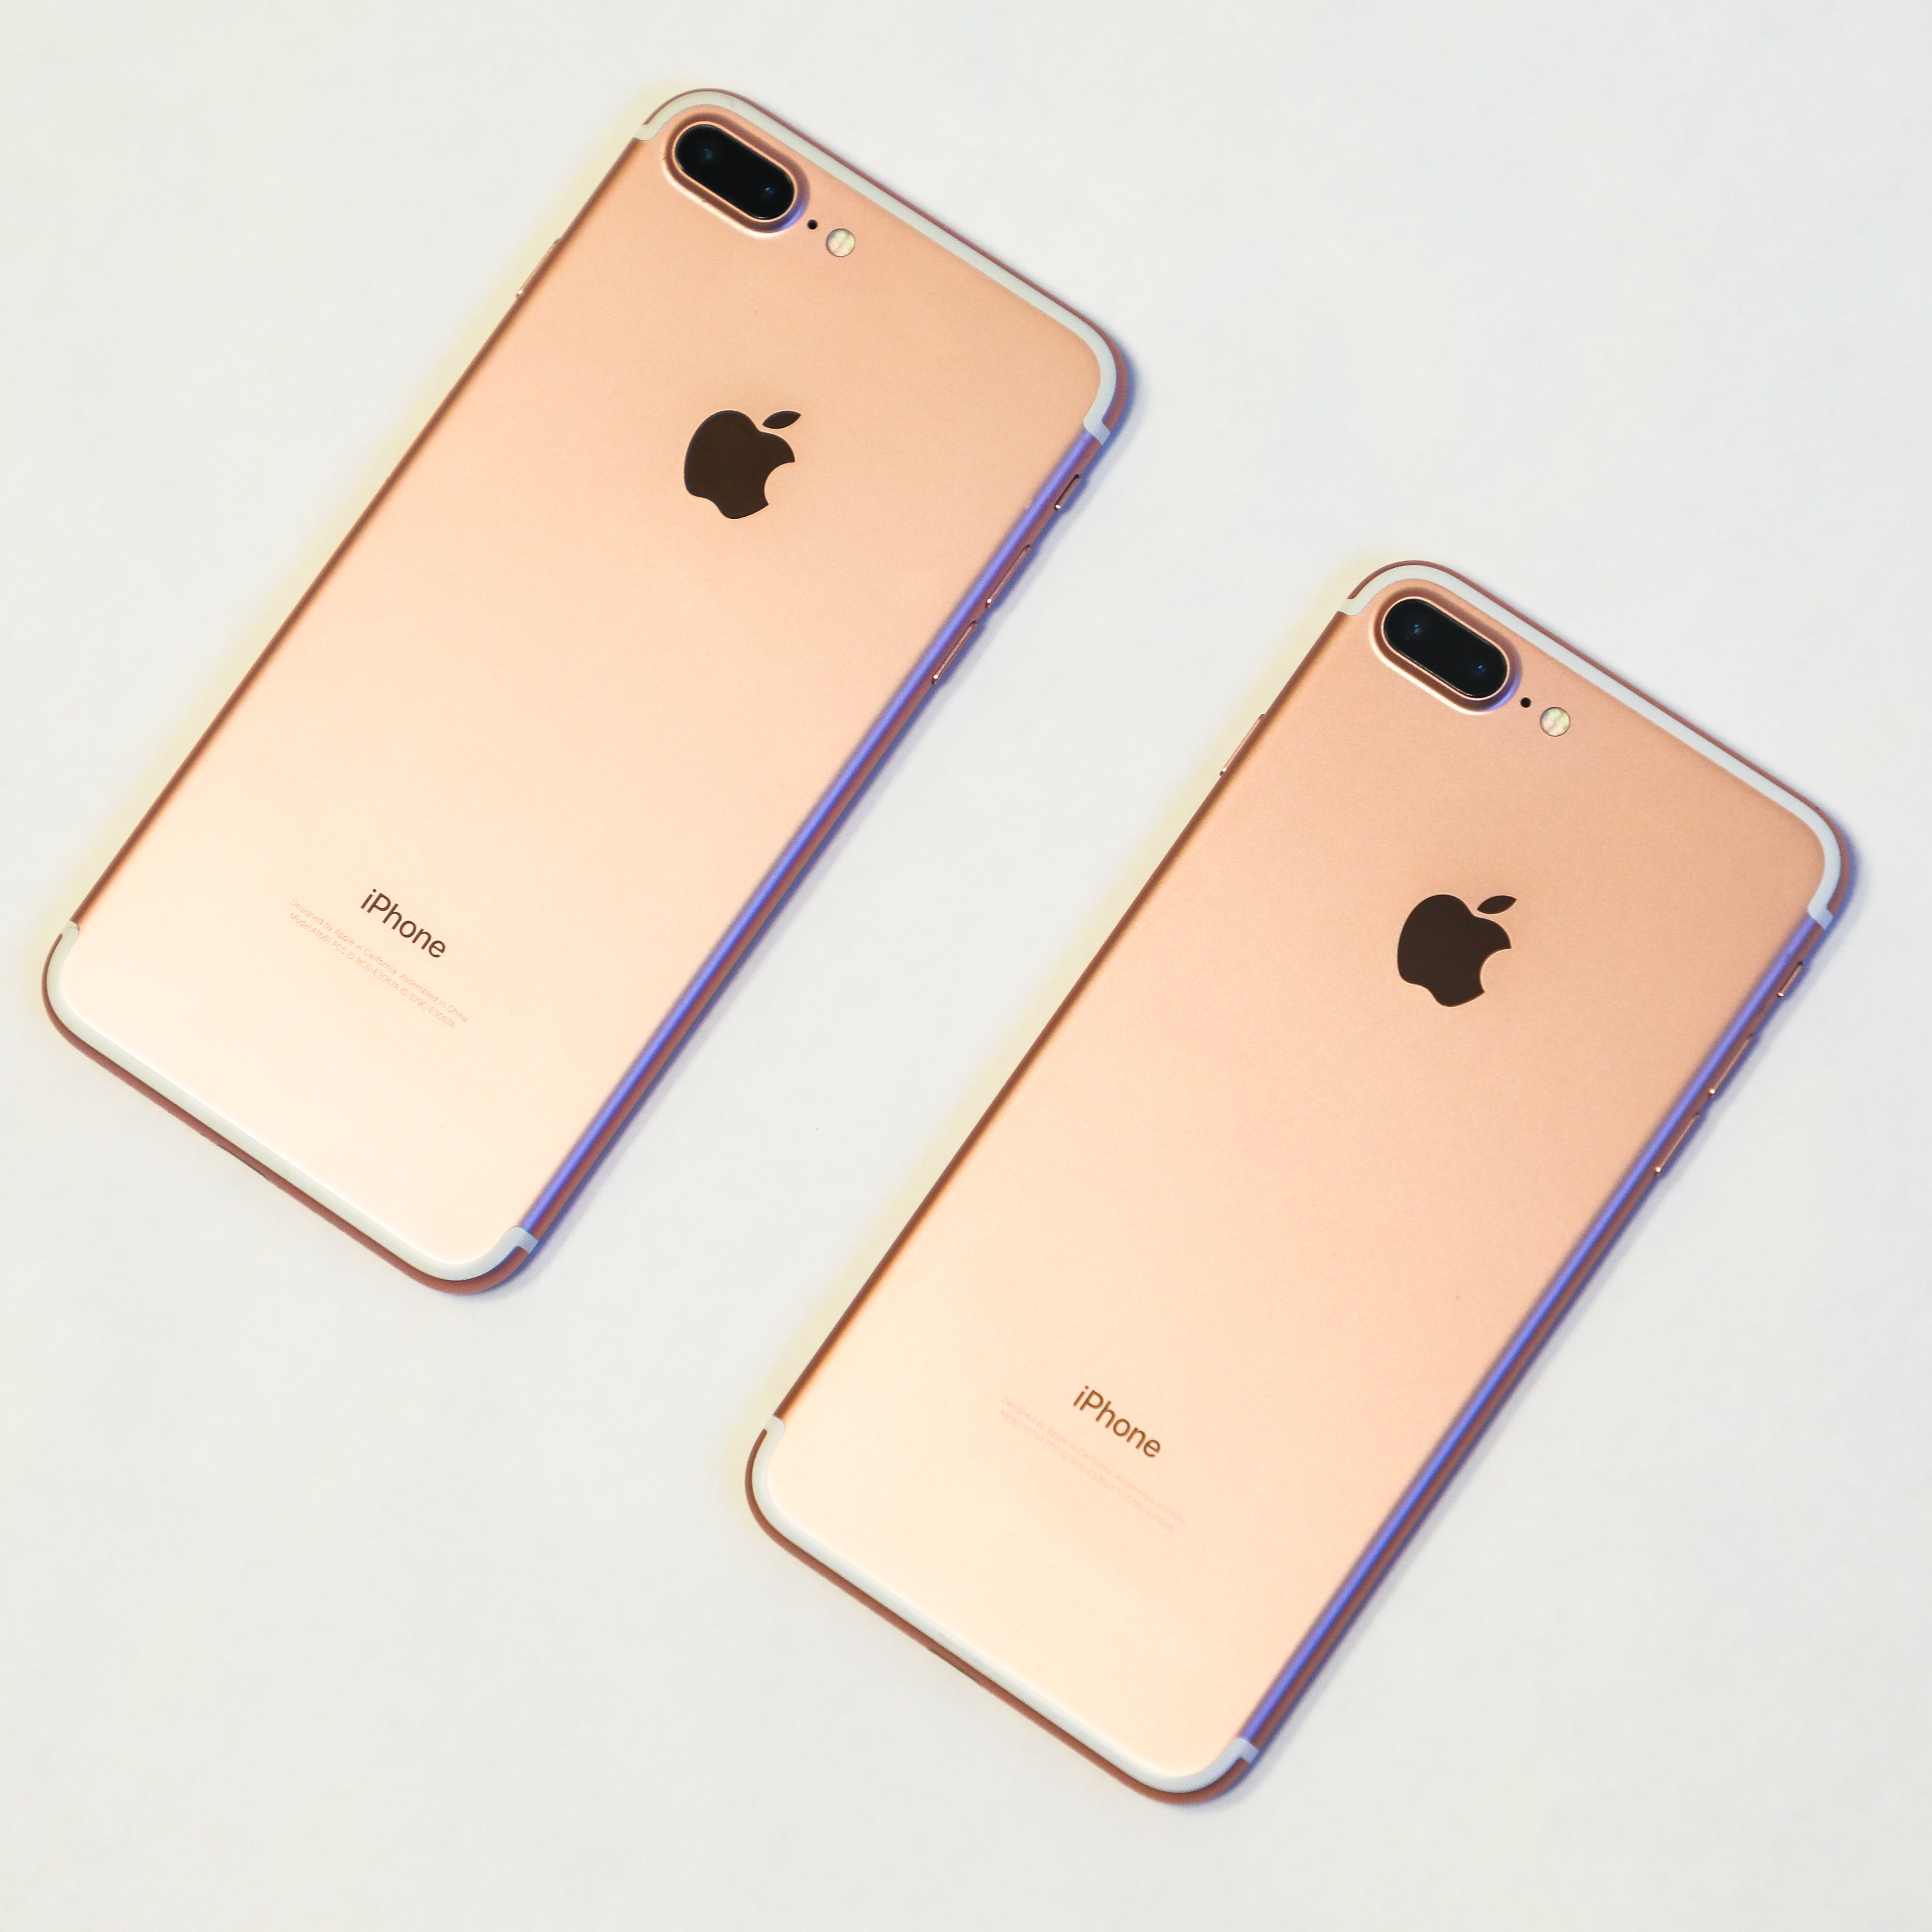 How To Buy A Refurbished Iphone Without Getting A Ripped Off The Washington Post